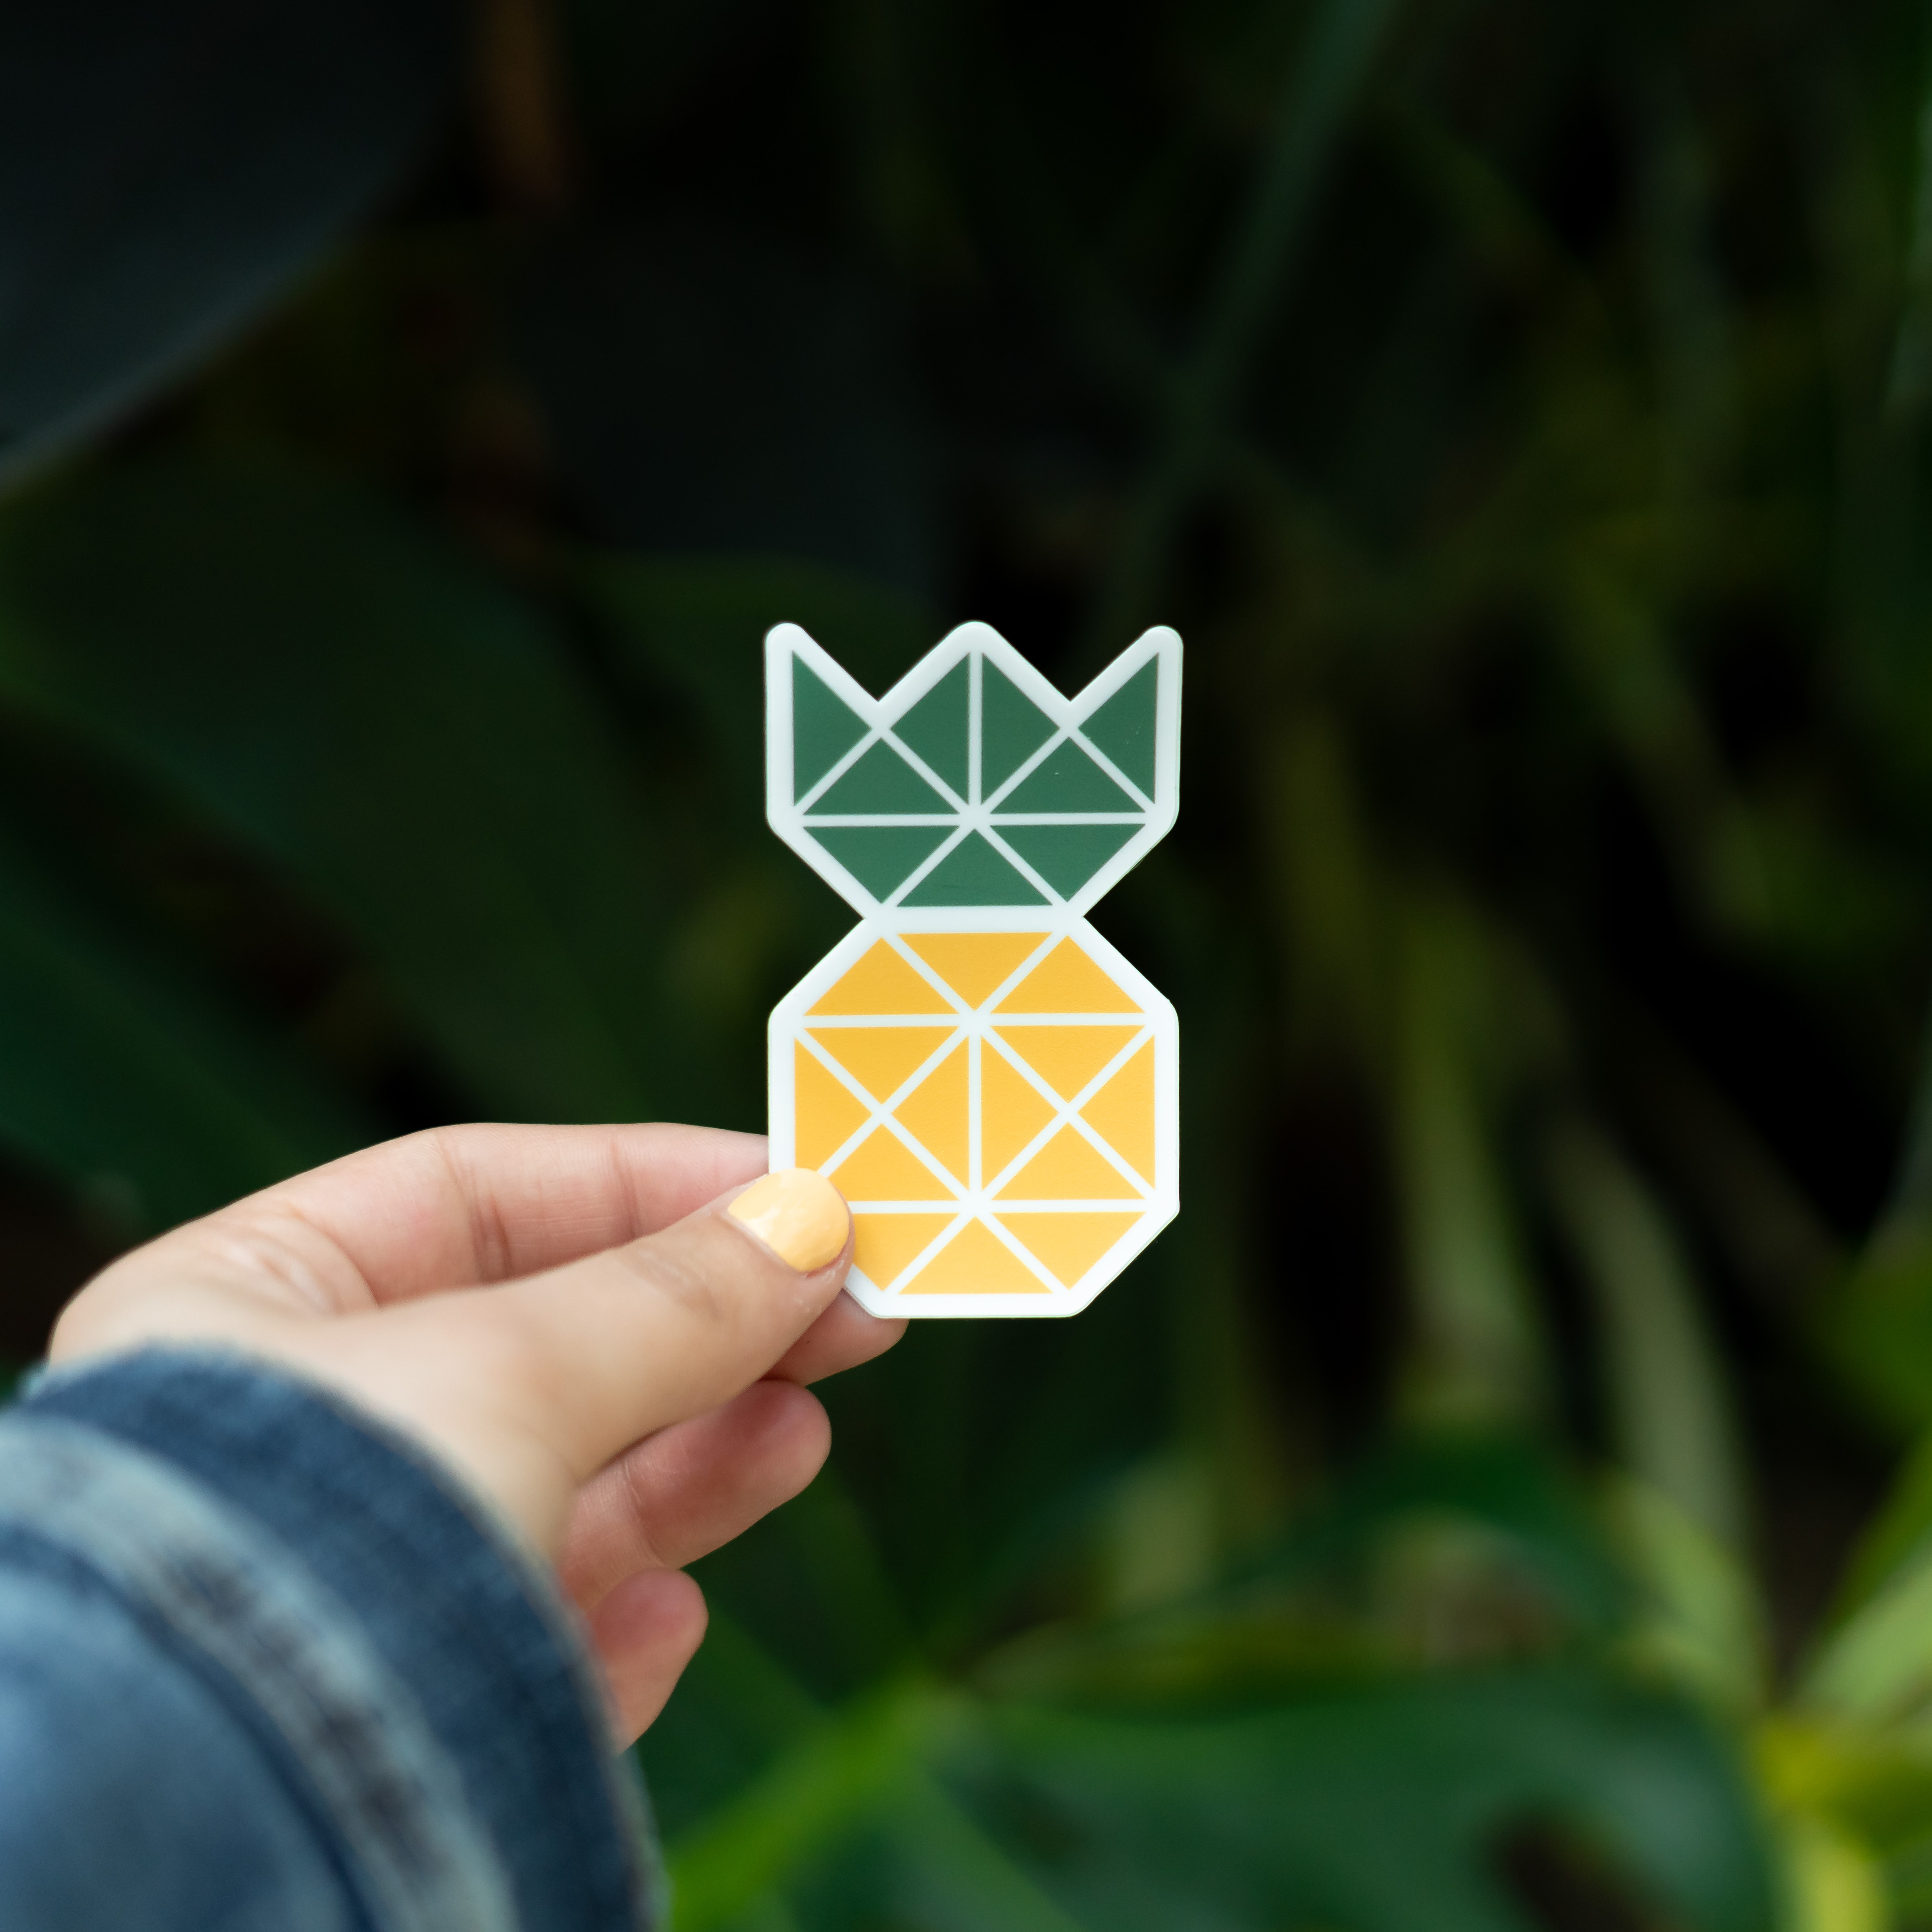 person holding yellow and green pineapple artwork selective photo calligraphy